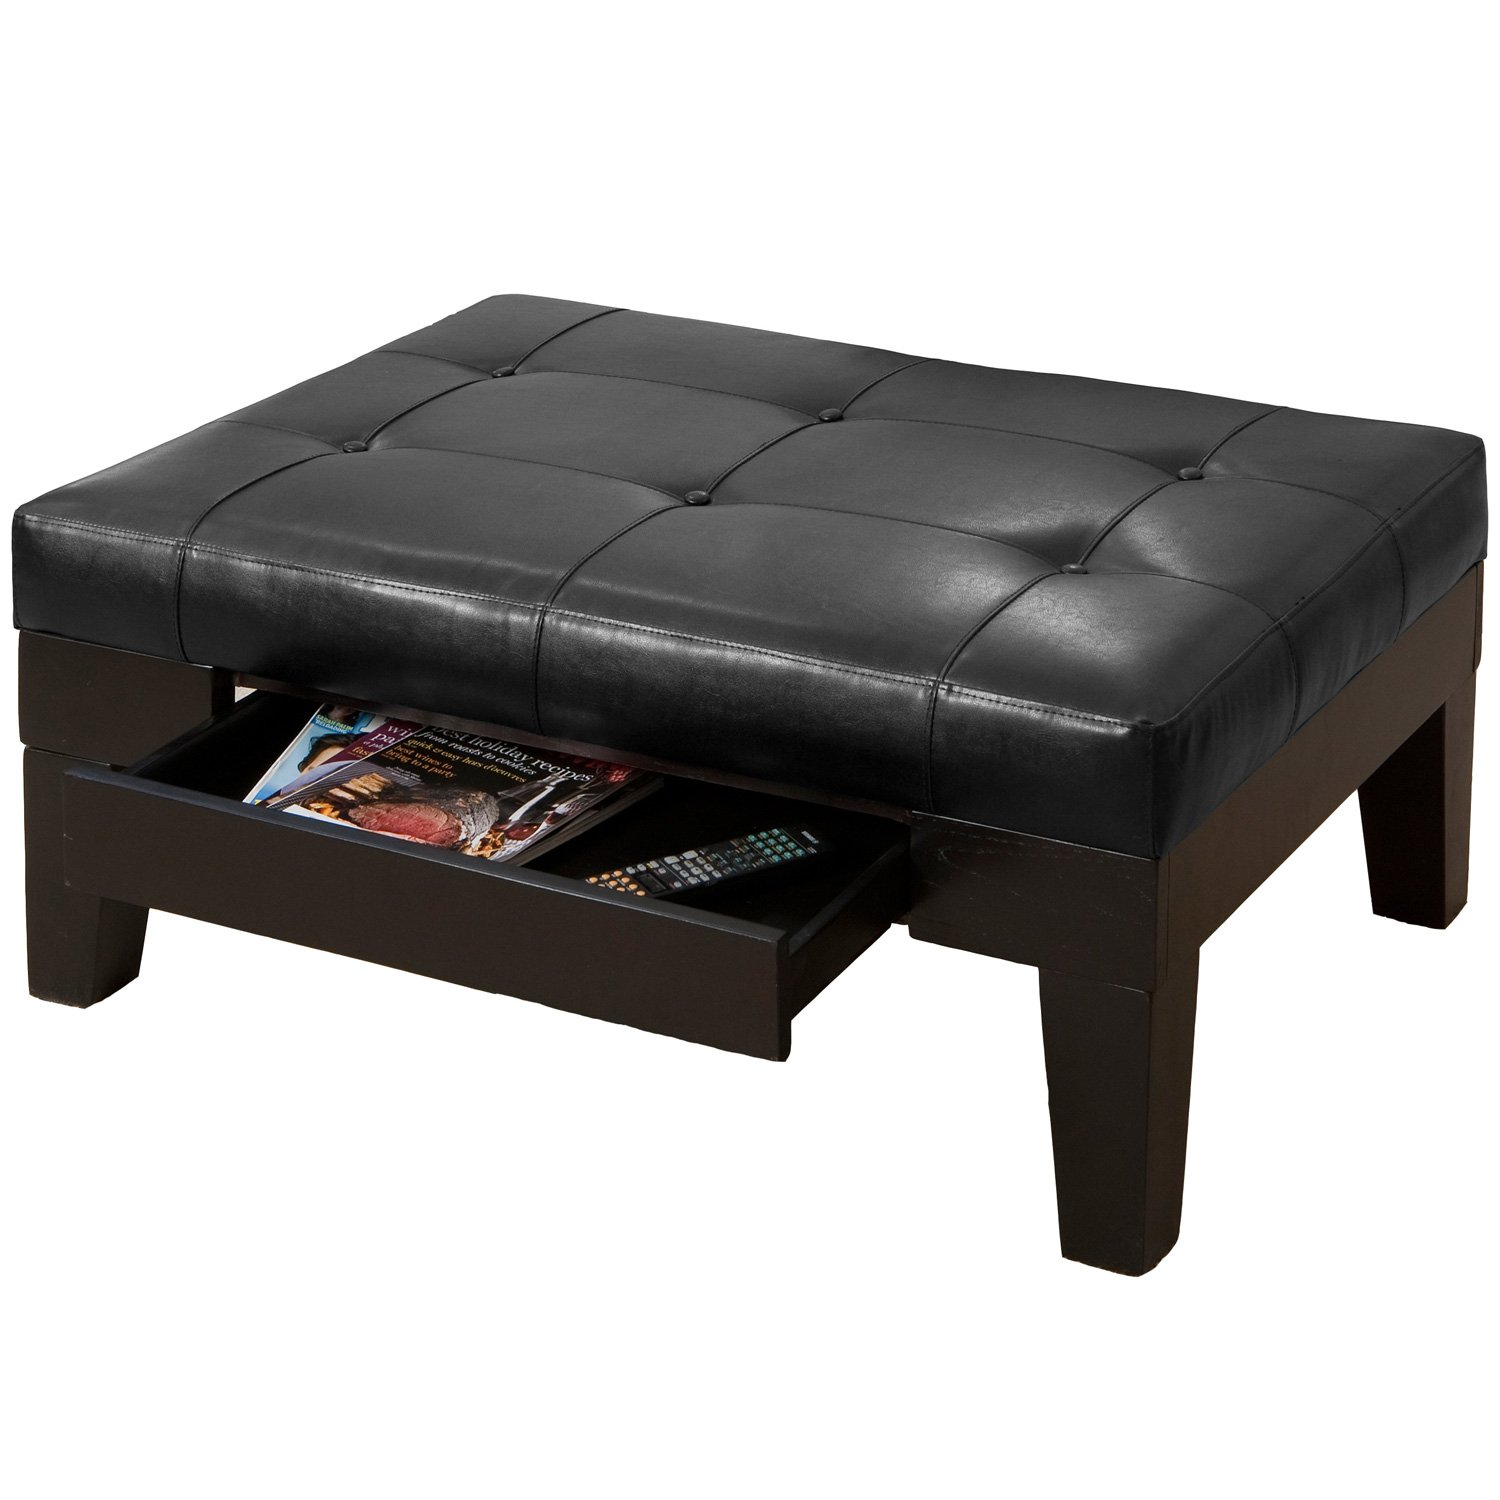 amazoncom tucson black leather tufted top coffee table w drawer kitchen u0026 dining